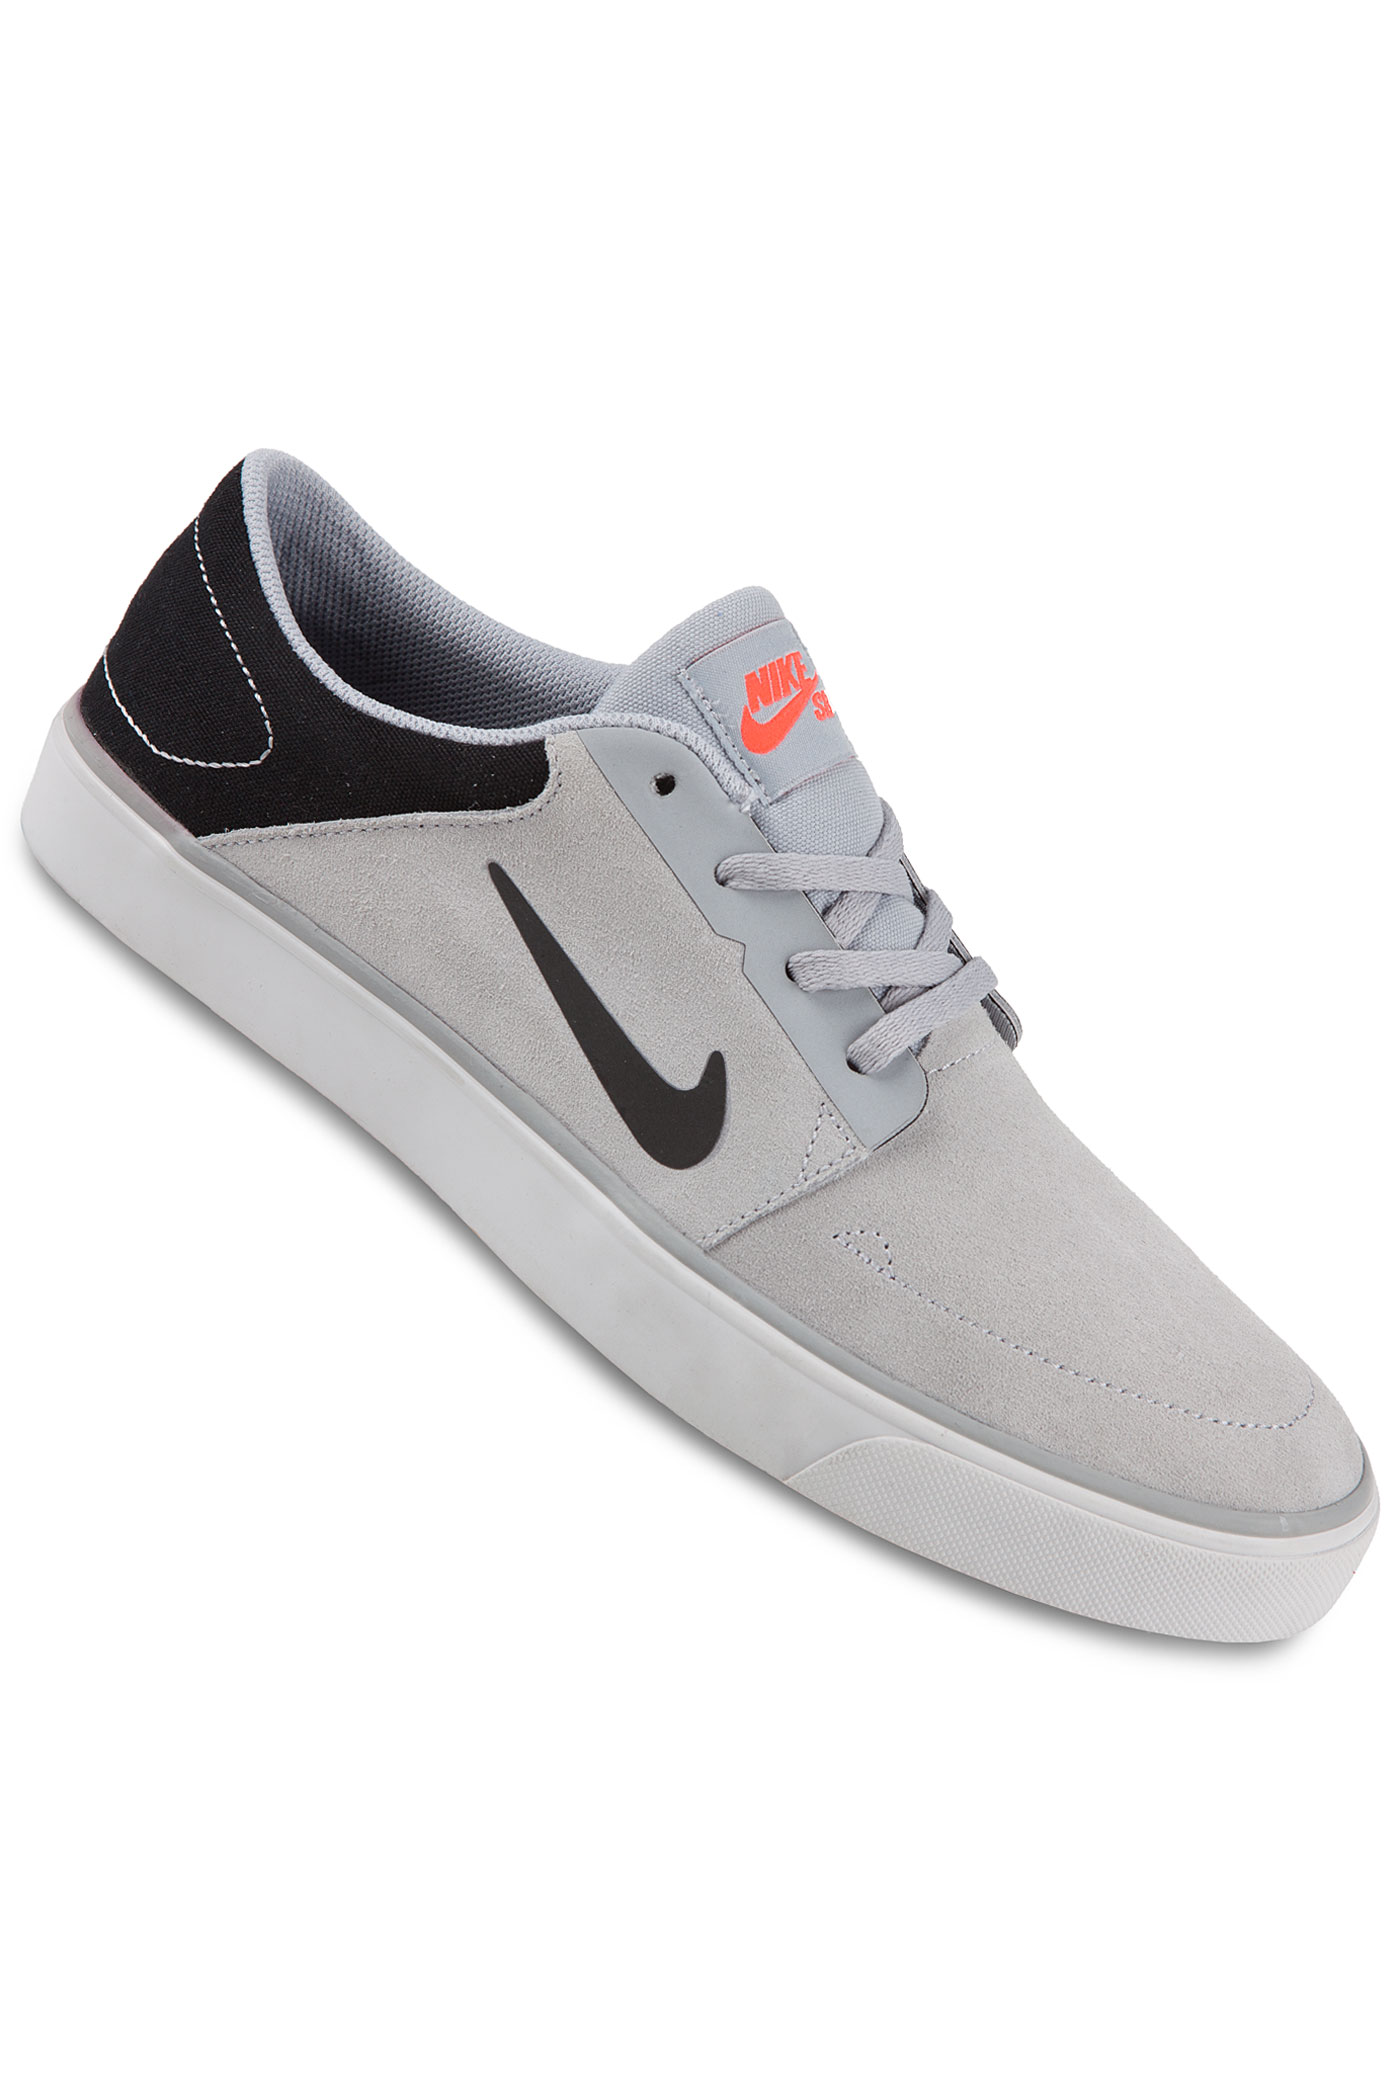 Nike Portmore Canvas Premium Sneakers blanc Baskets